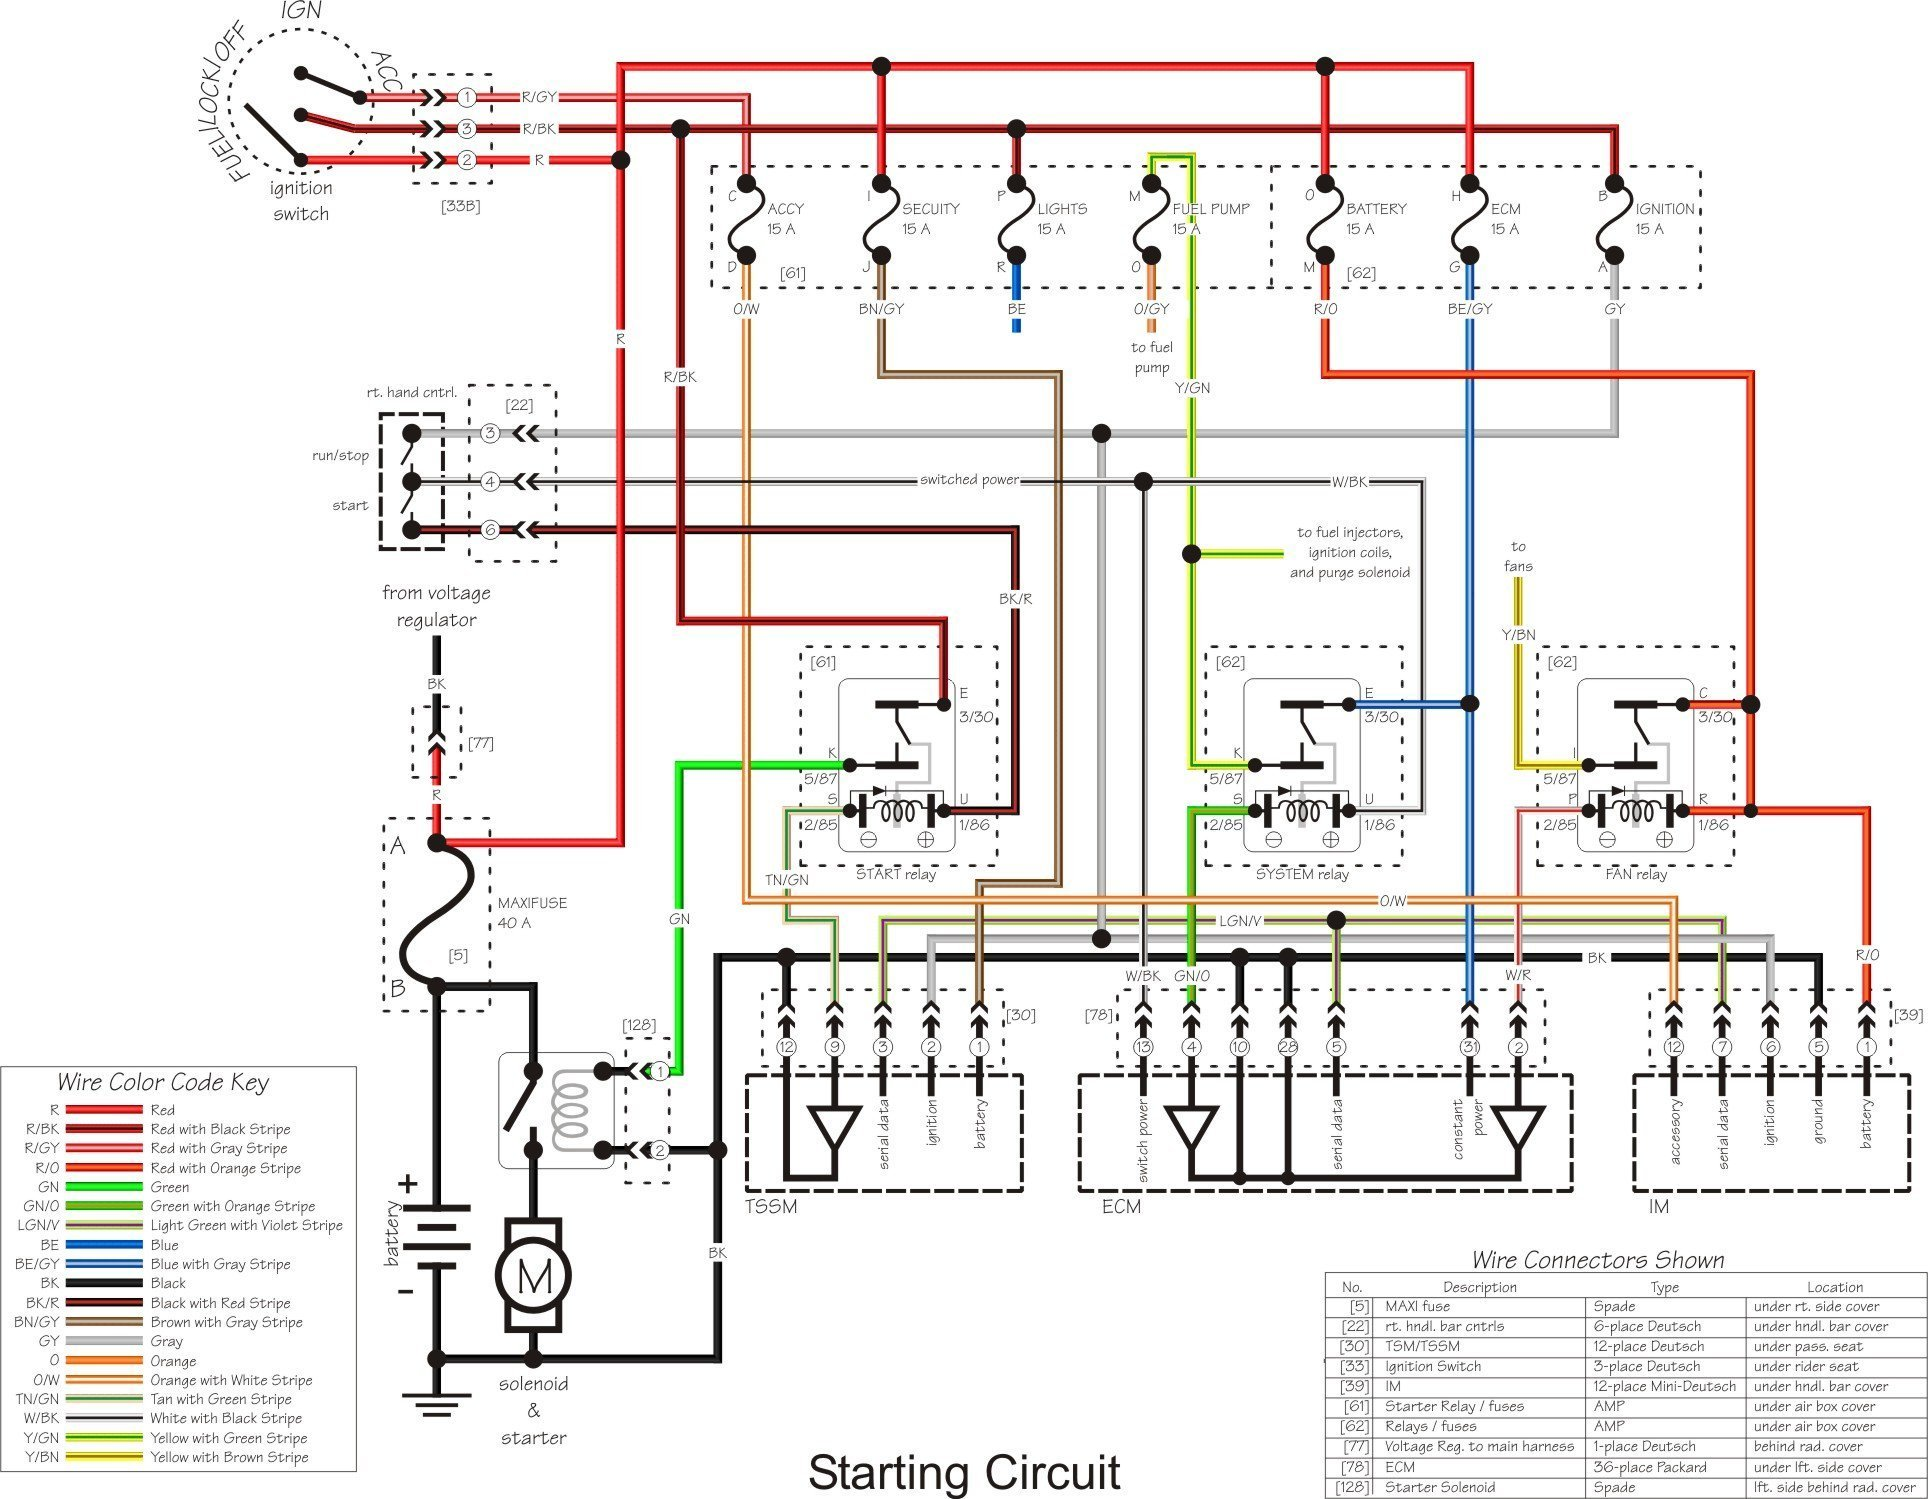 2000 Yamaha R1 Wiring Diagram http://www.1130cc.com/forums/showthread.php?t=154197